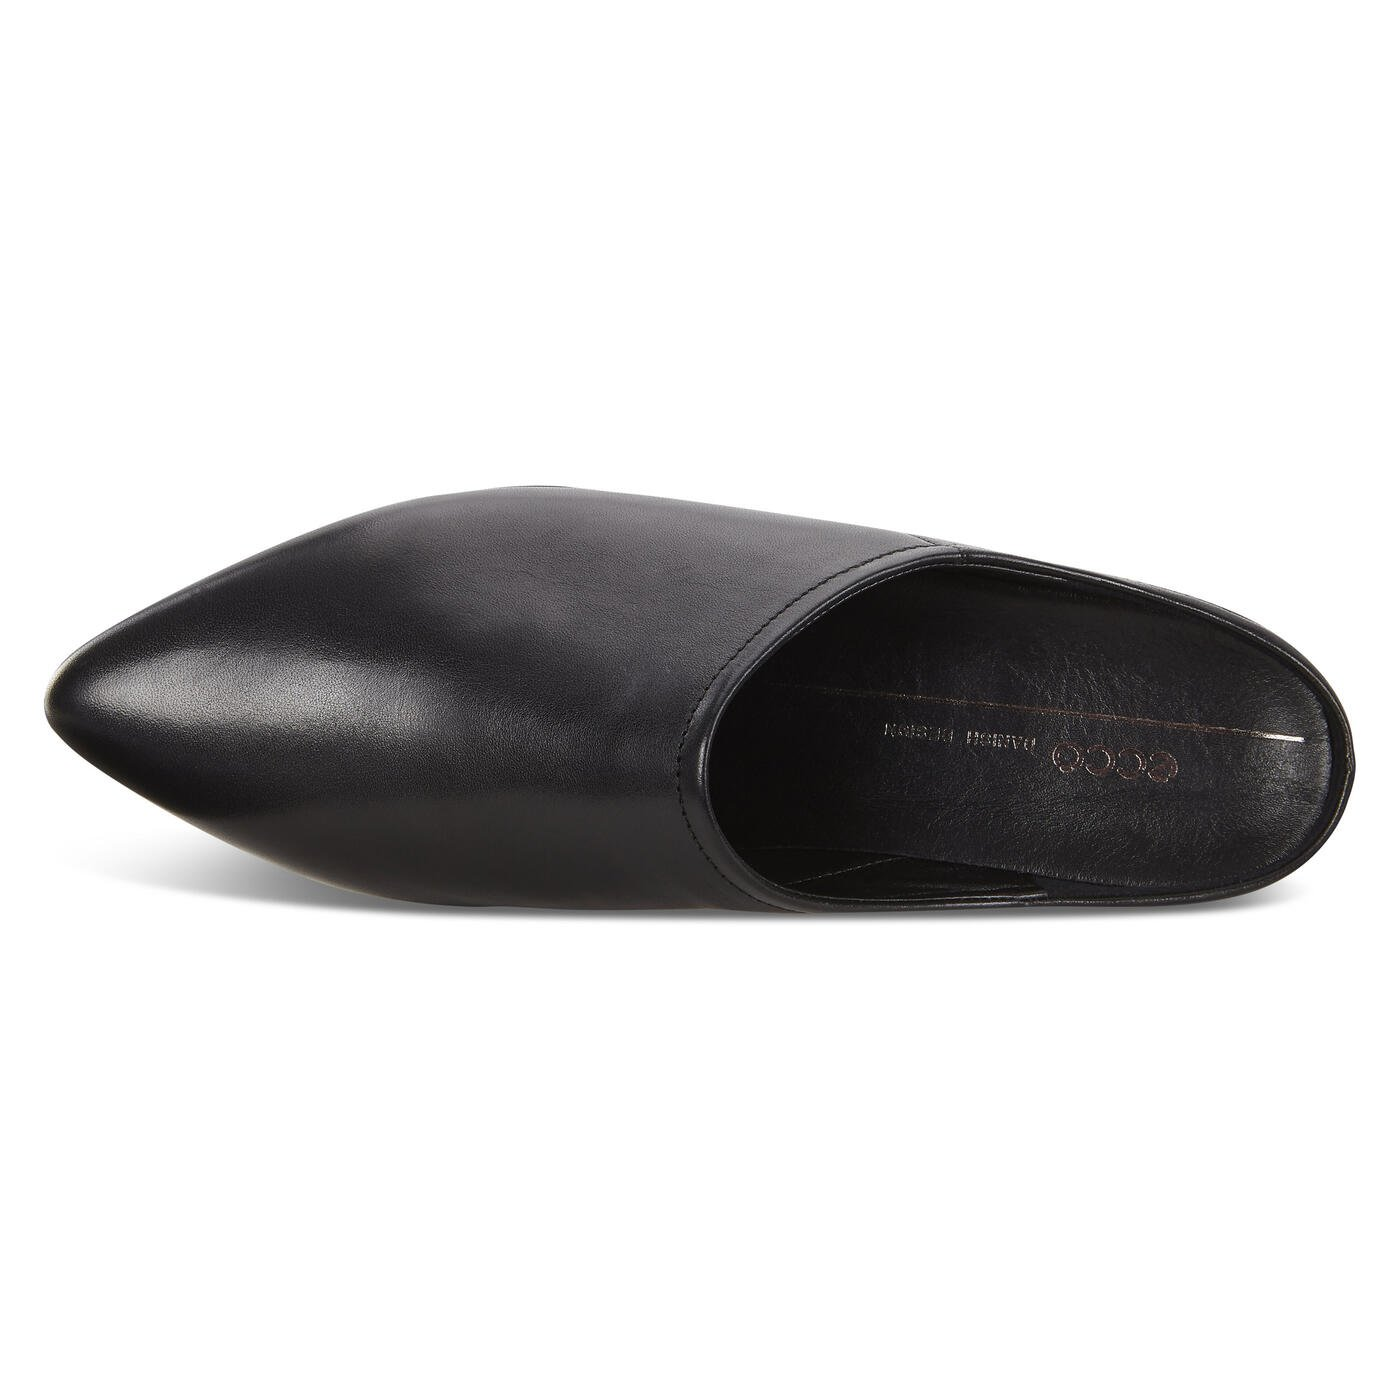 ECCO SHAPE POINTY BALLERINA SLIP ON